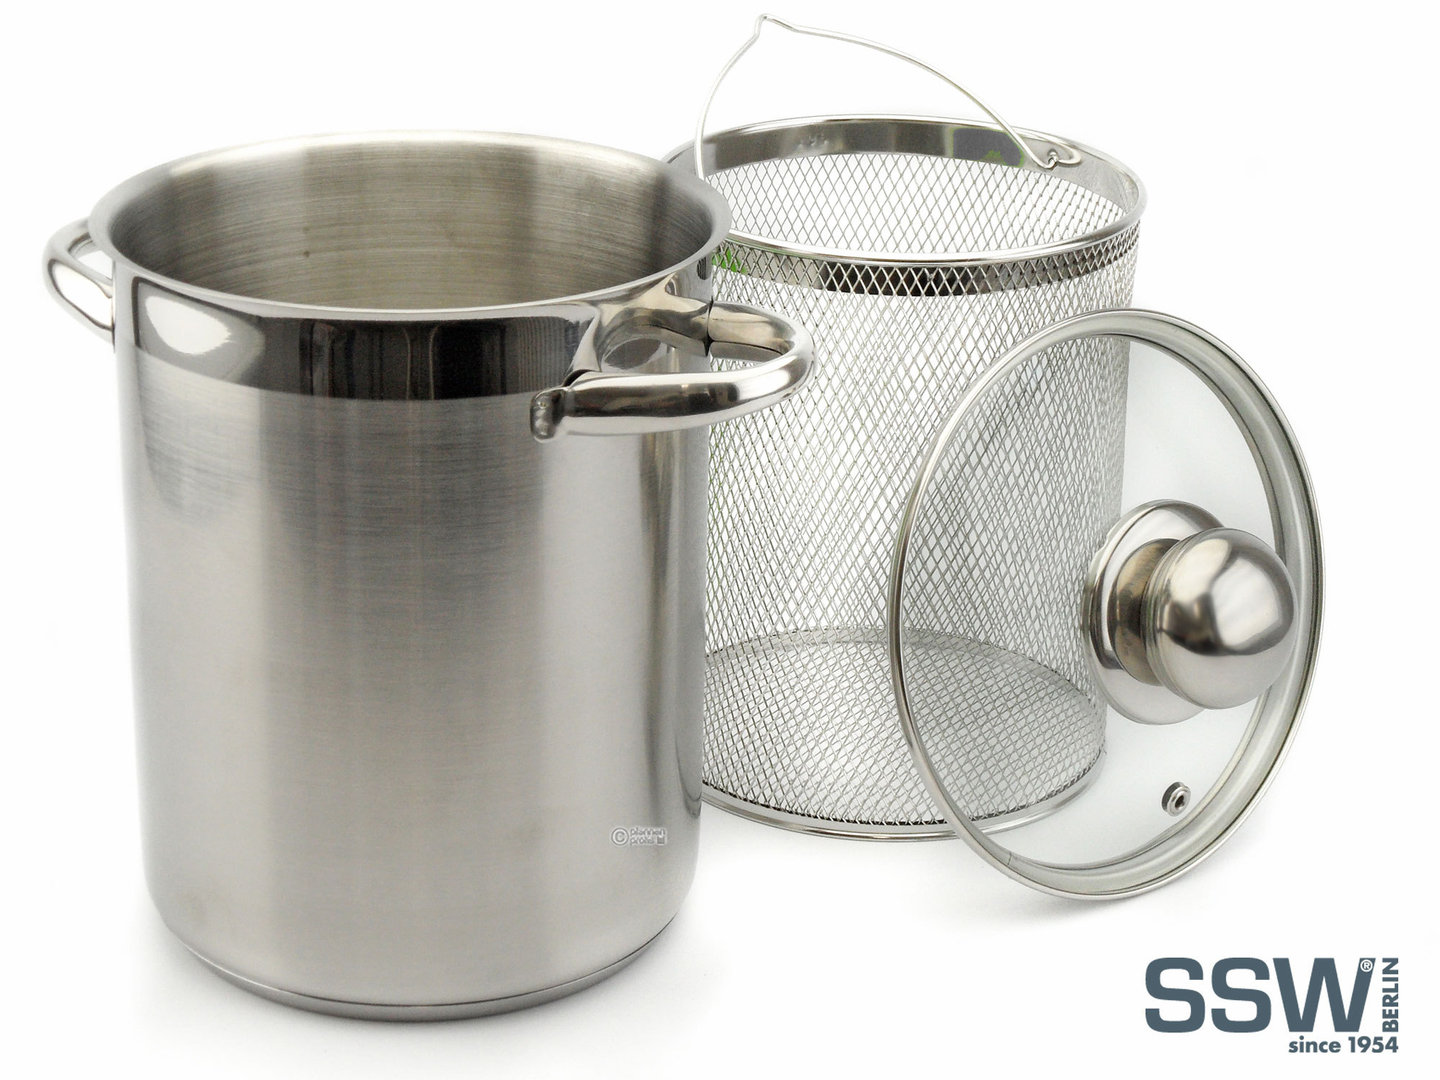 SSW asparagus cooker HIGH POT 16 cm stainless steel with basket and lid